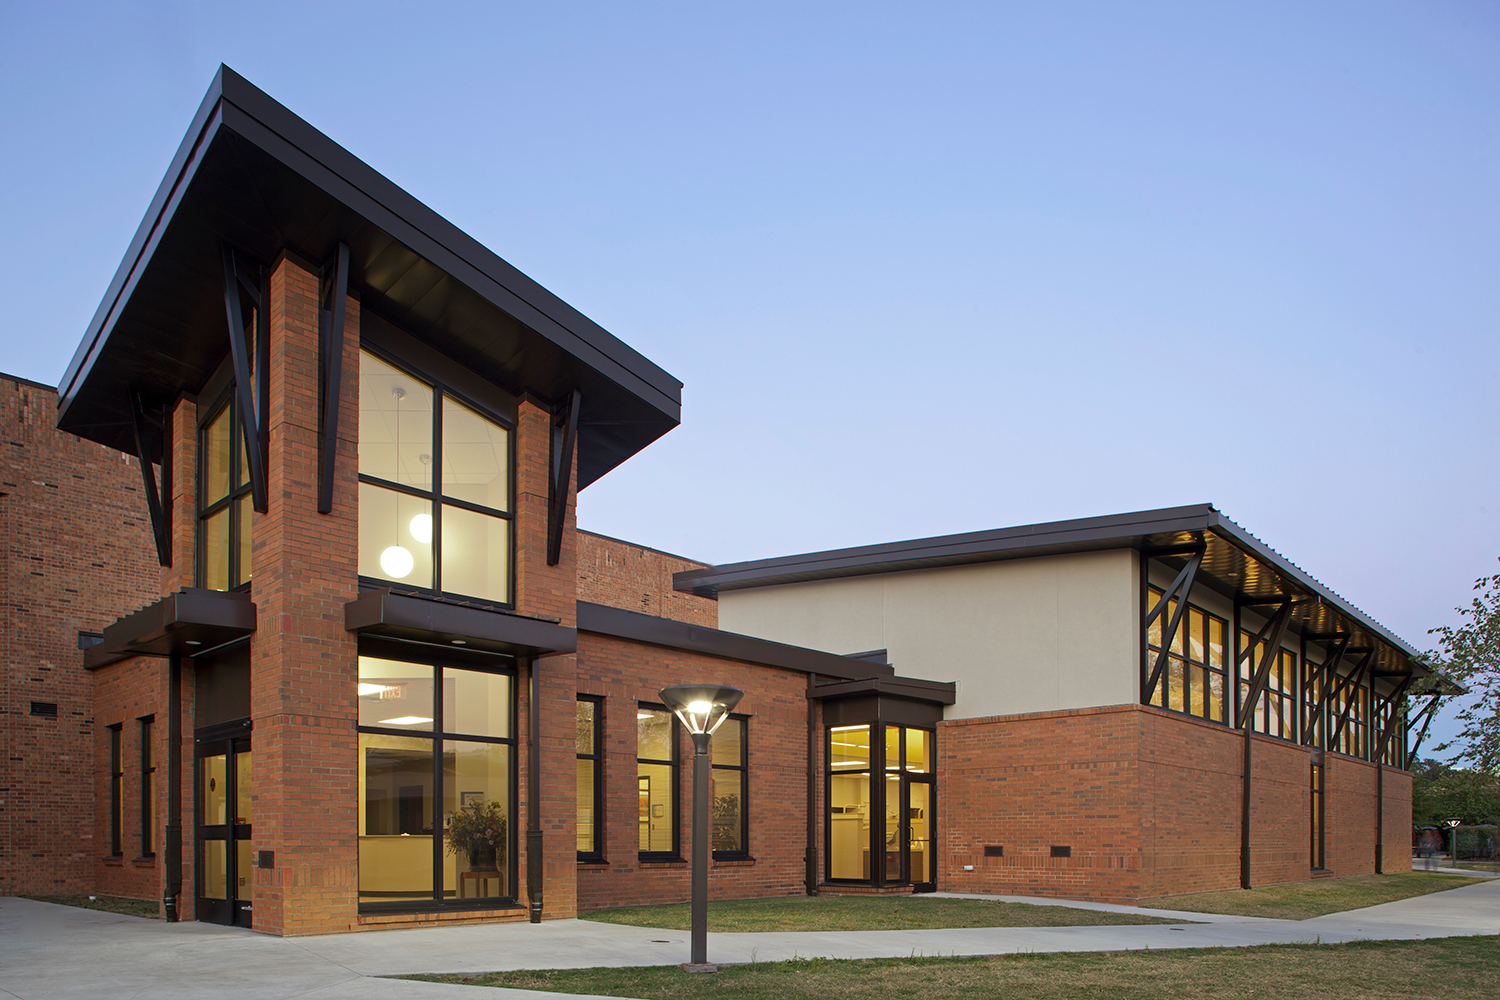 Savannah-Tech-Dental-Lab-Education Construction-Exterior-Benning-Construction-Company